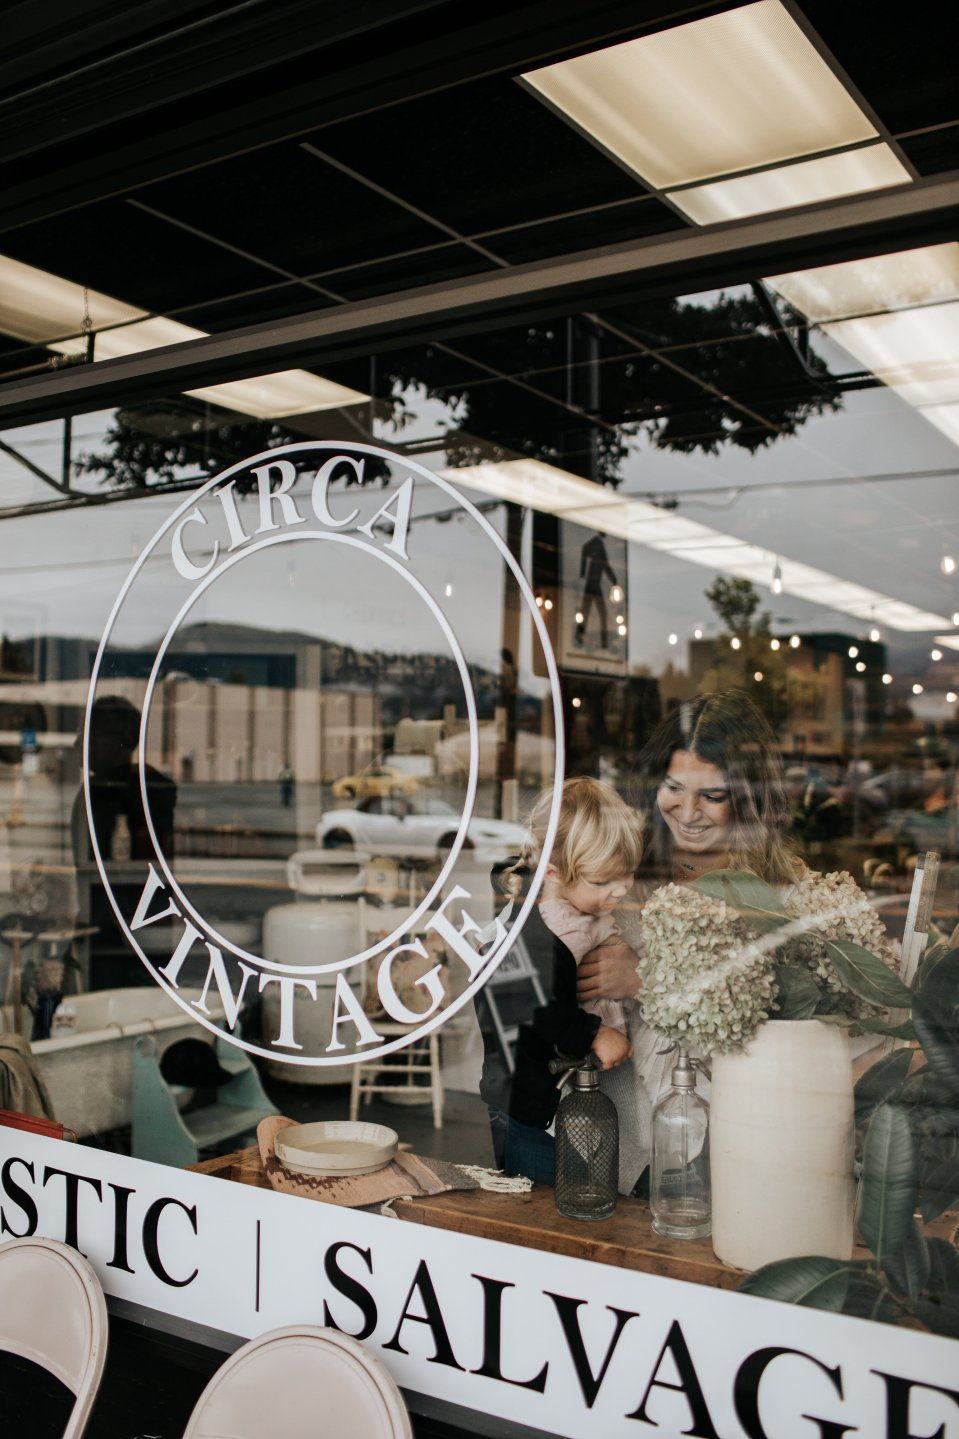 Circa Vintage | 10 Places to see and things to do in Chilliwack, BC